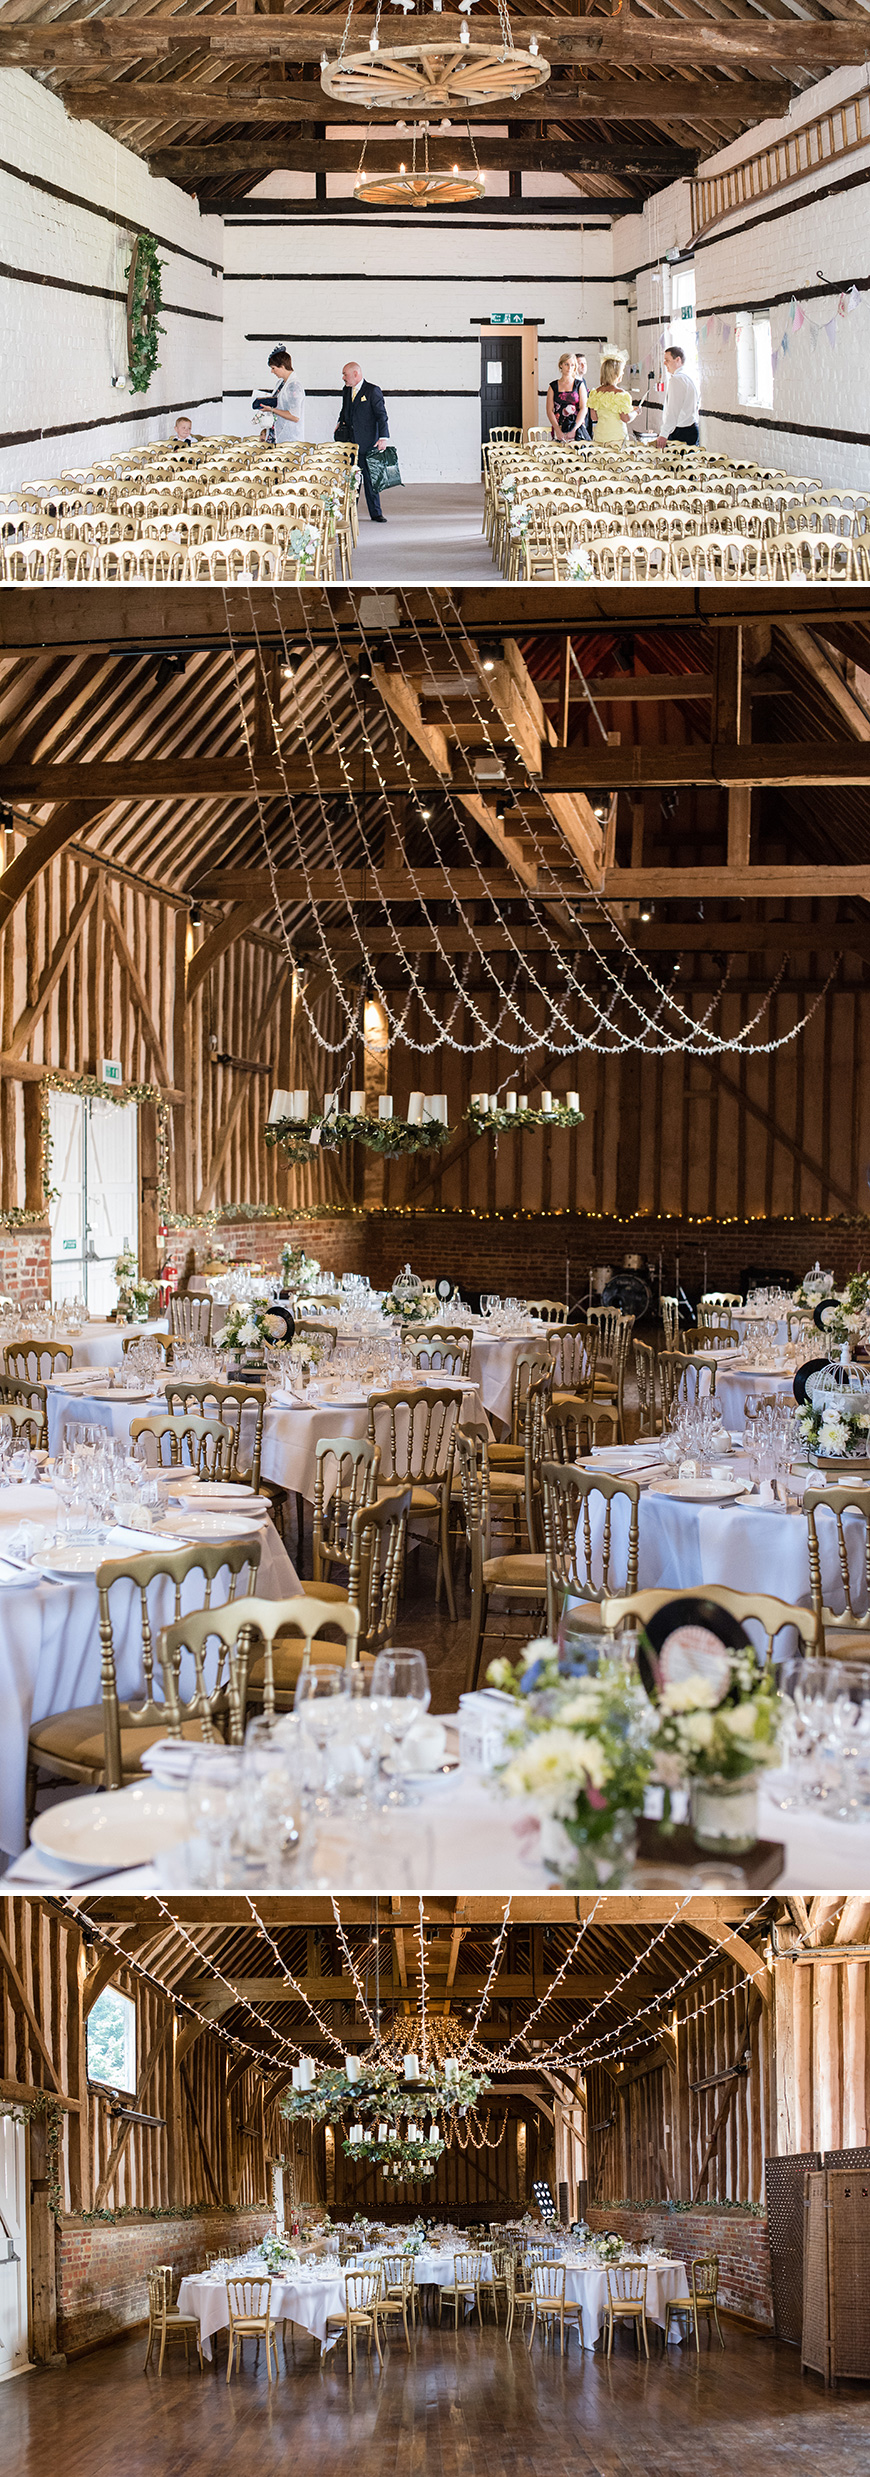 A Country Fair-Inspired Wedding at Lillibrooke Manor - The venue | CHWV